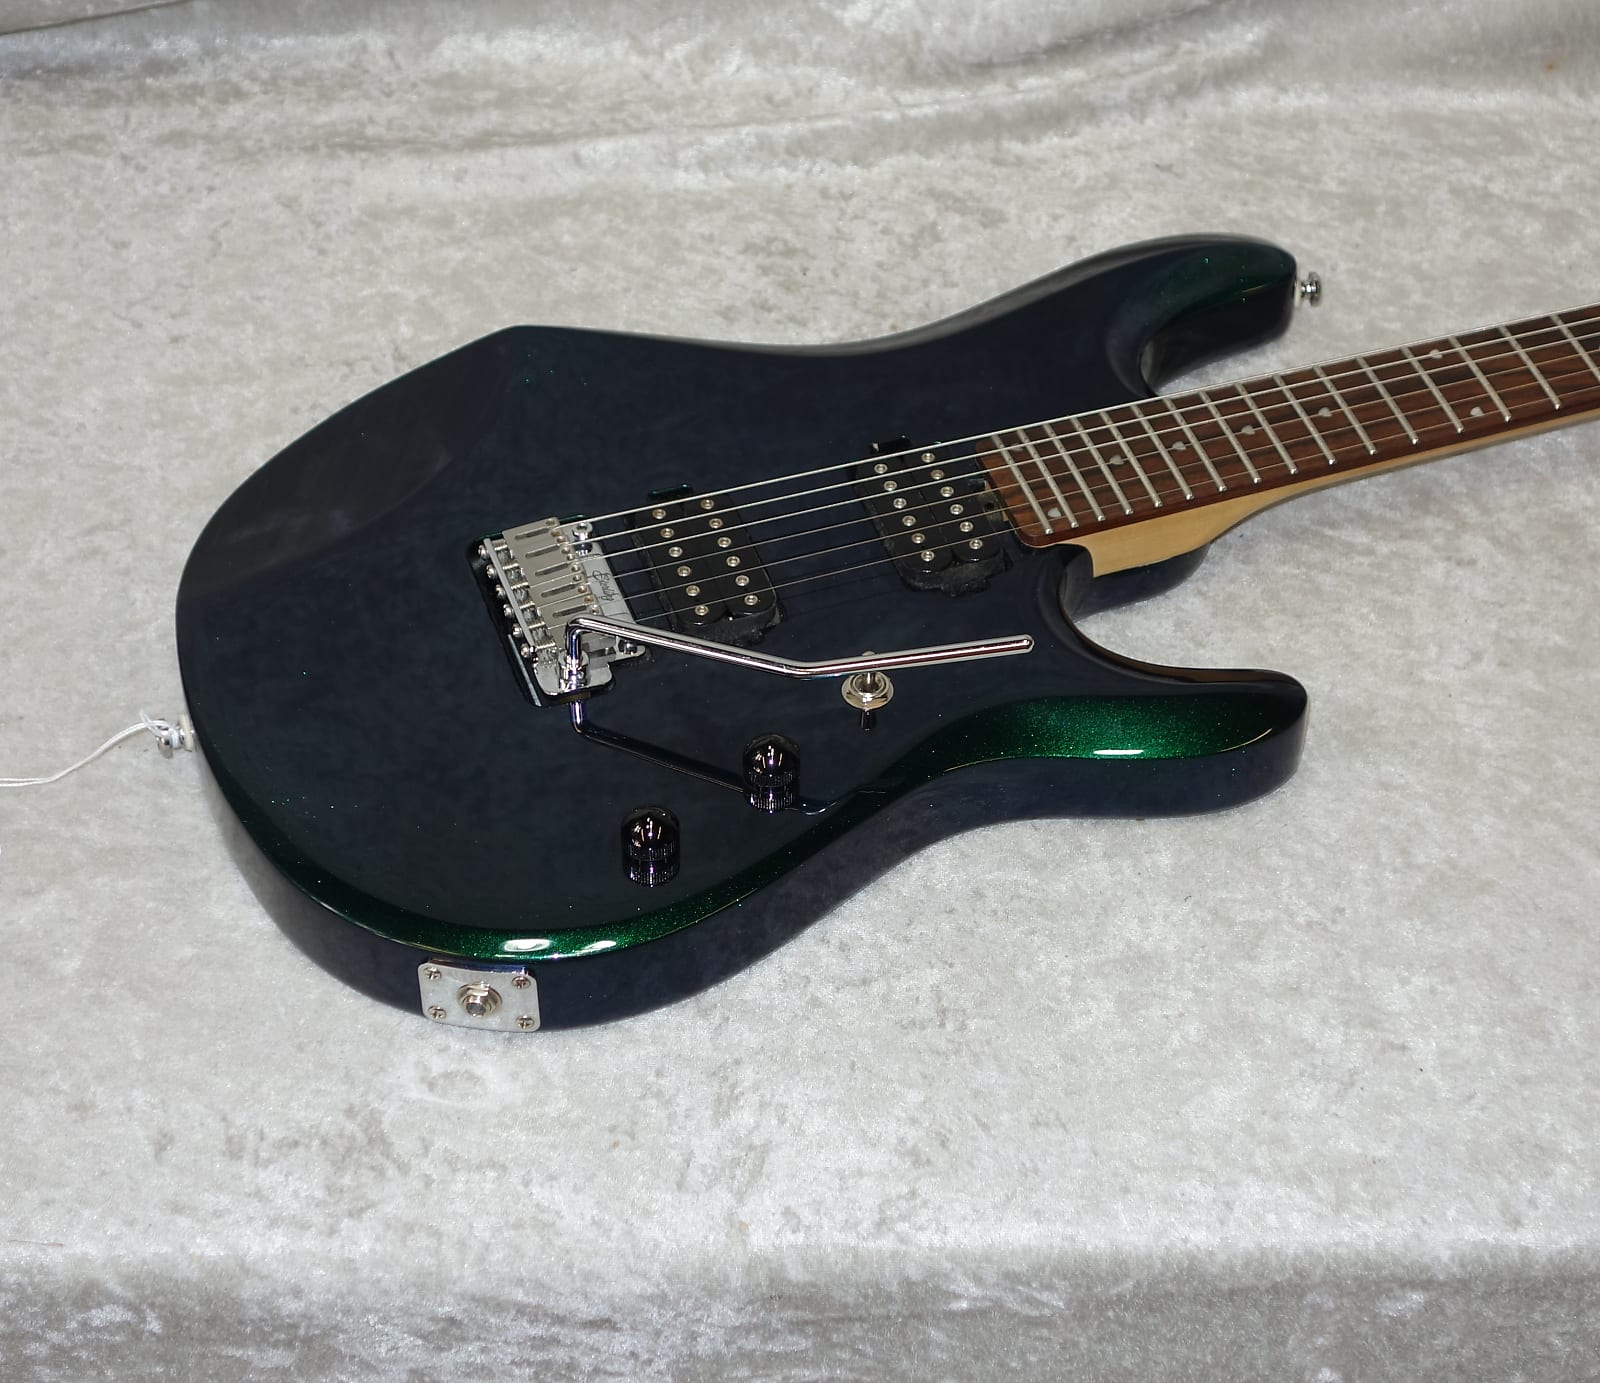 sterling by music man jp60 john petrucci electric guitar in mystic green finish. Black Bedroom Furniture Sets. Home Design Ideas